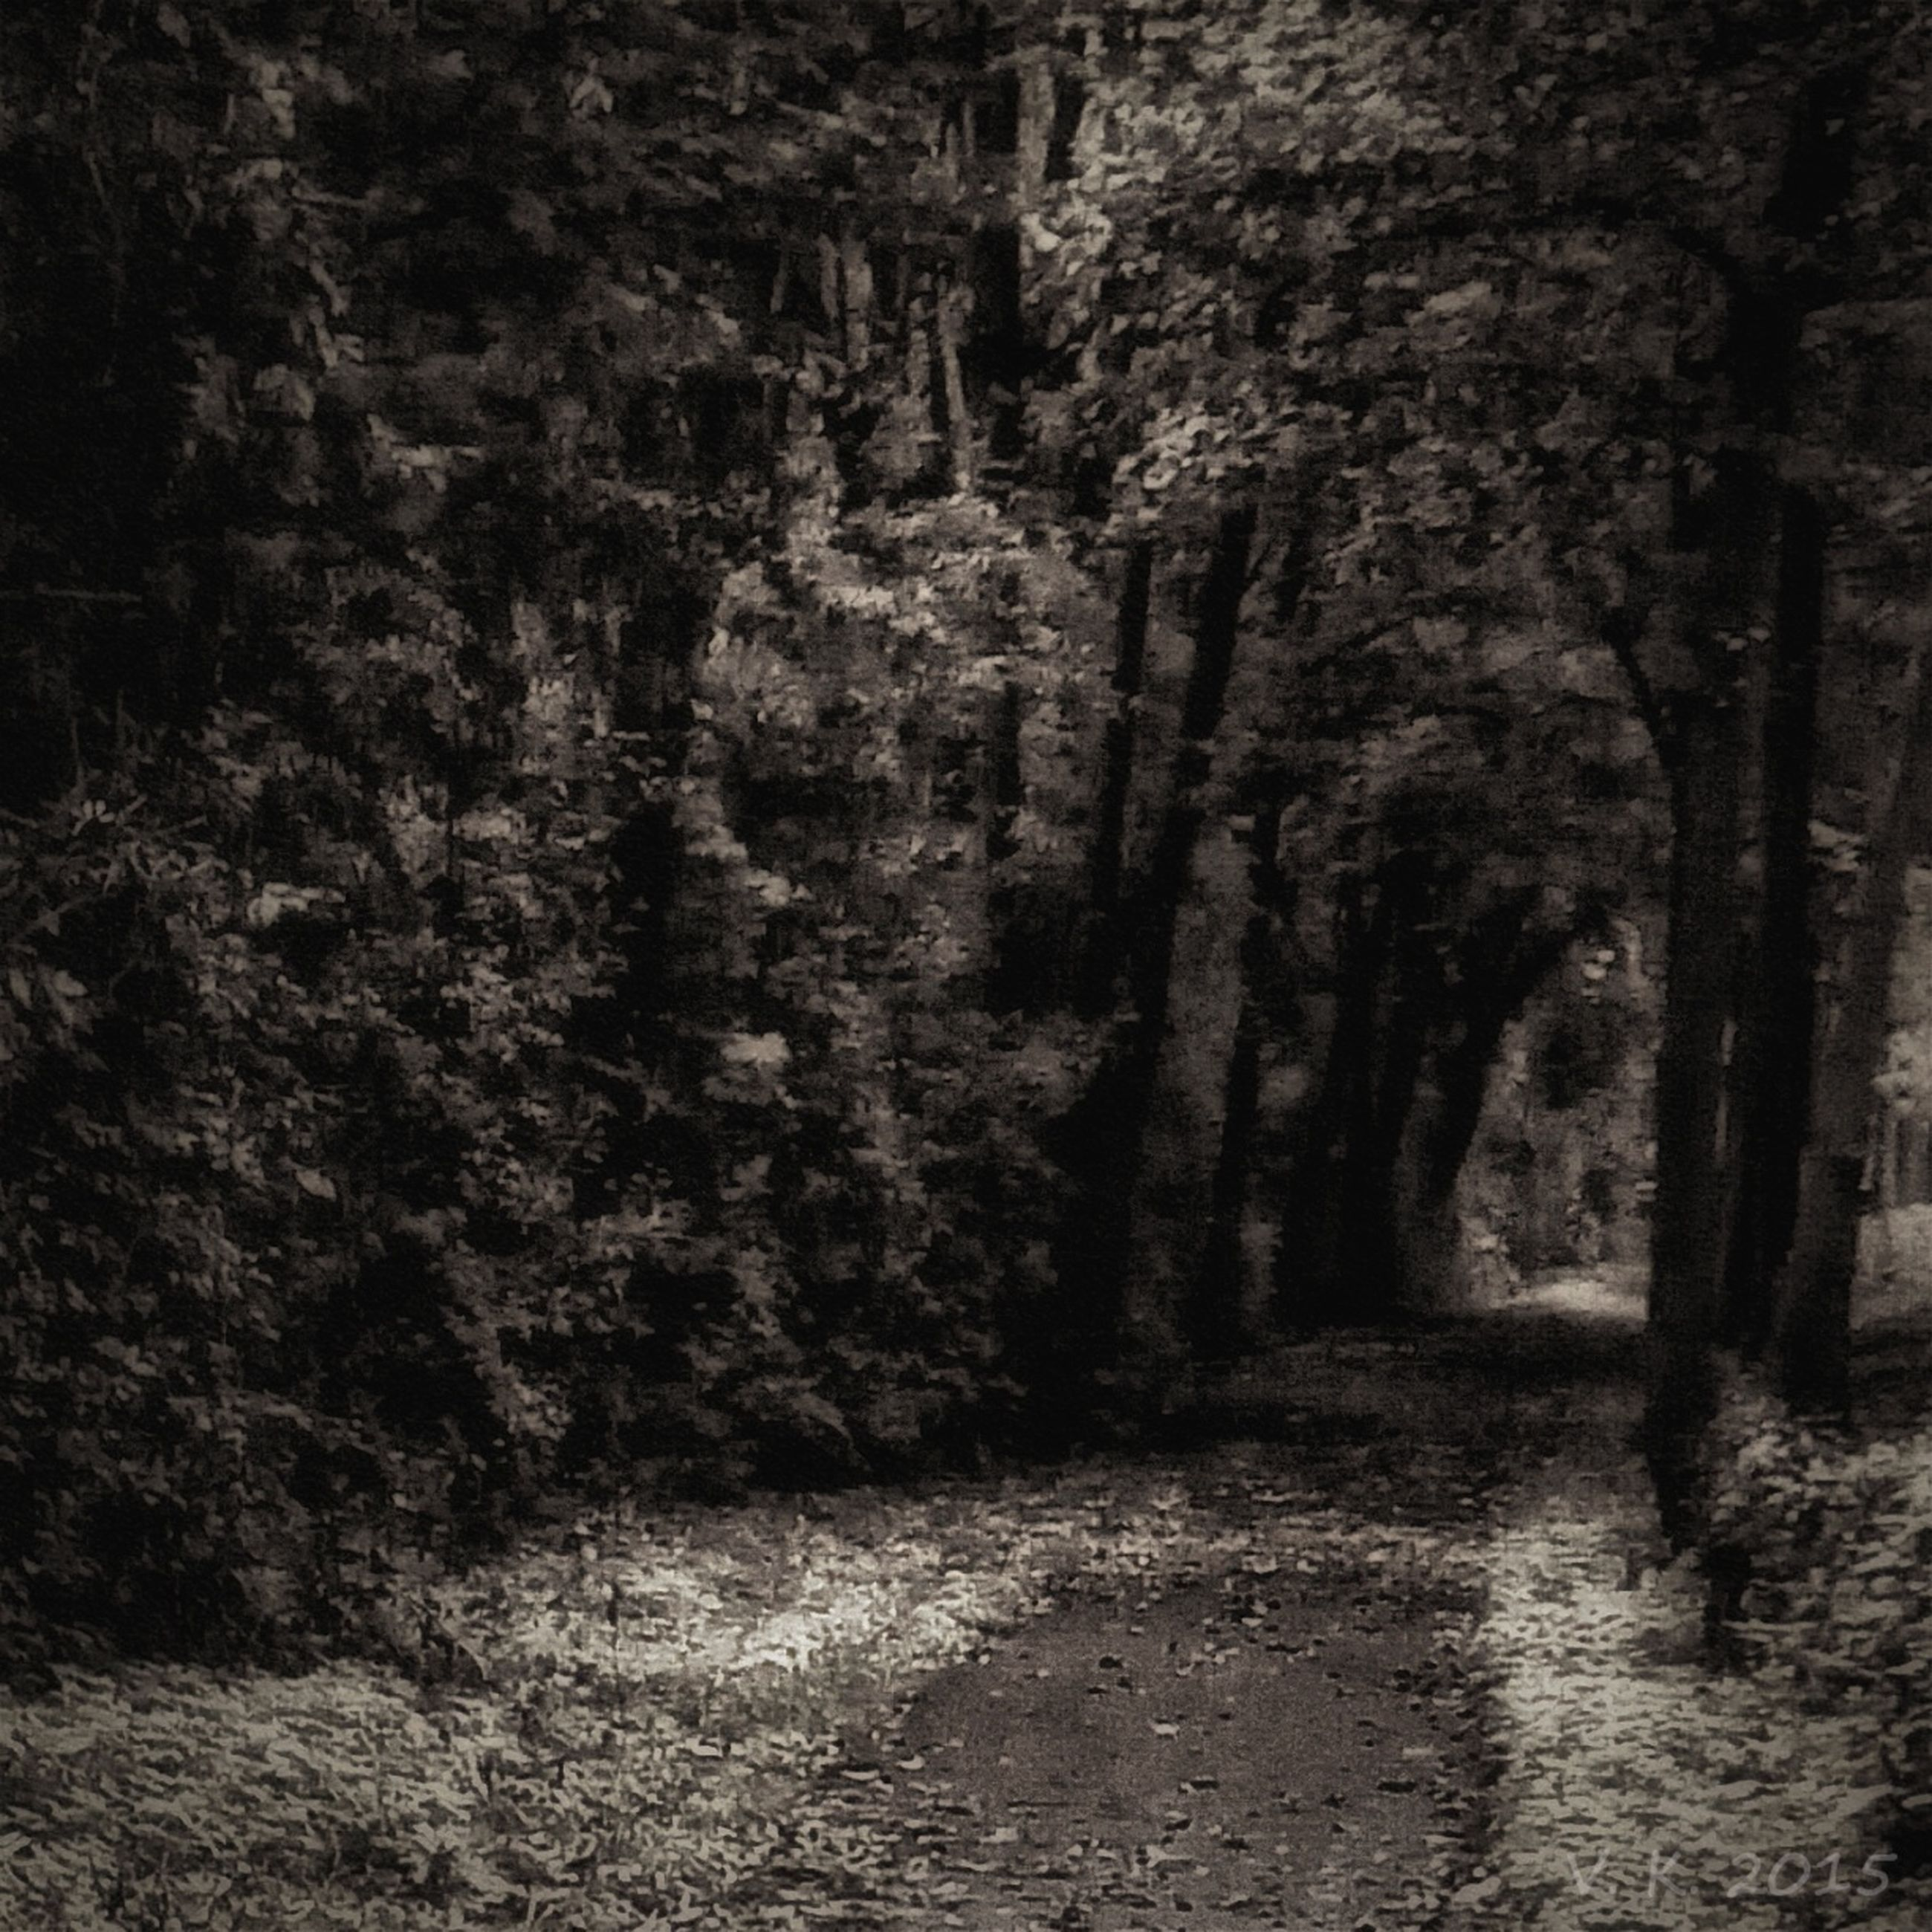 tree, the way forward, tranquility, forest, nature, tranquil scene, tree trunk, growth, narrow, beauty in nature, day, outdoors, no people, diminishing perspective, scenics, dirt road, footpath, pathway, non-urban scene, woodland